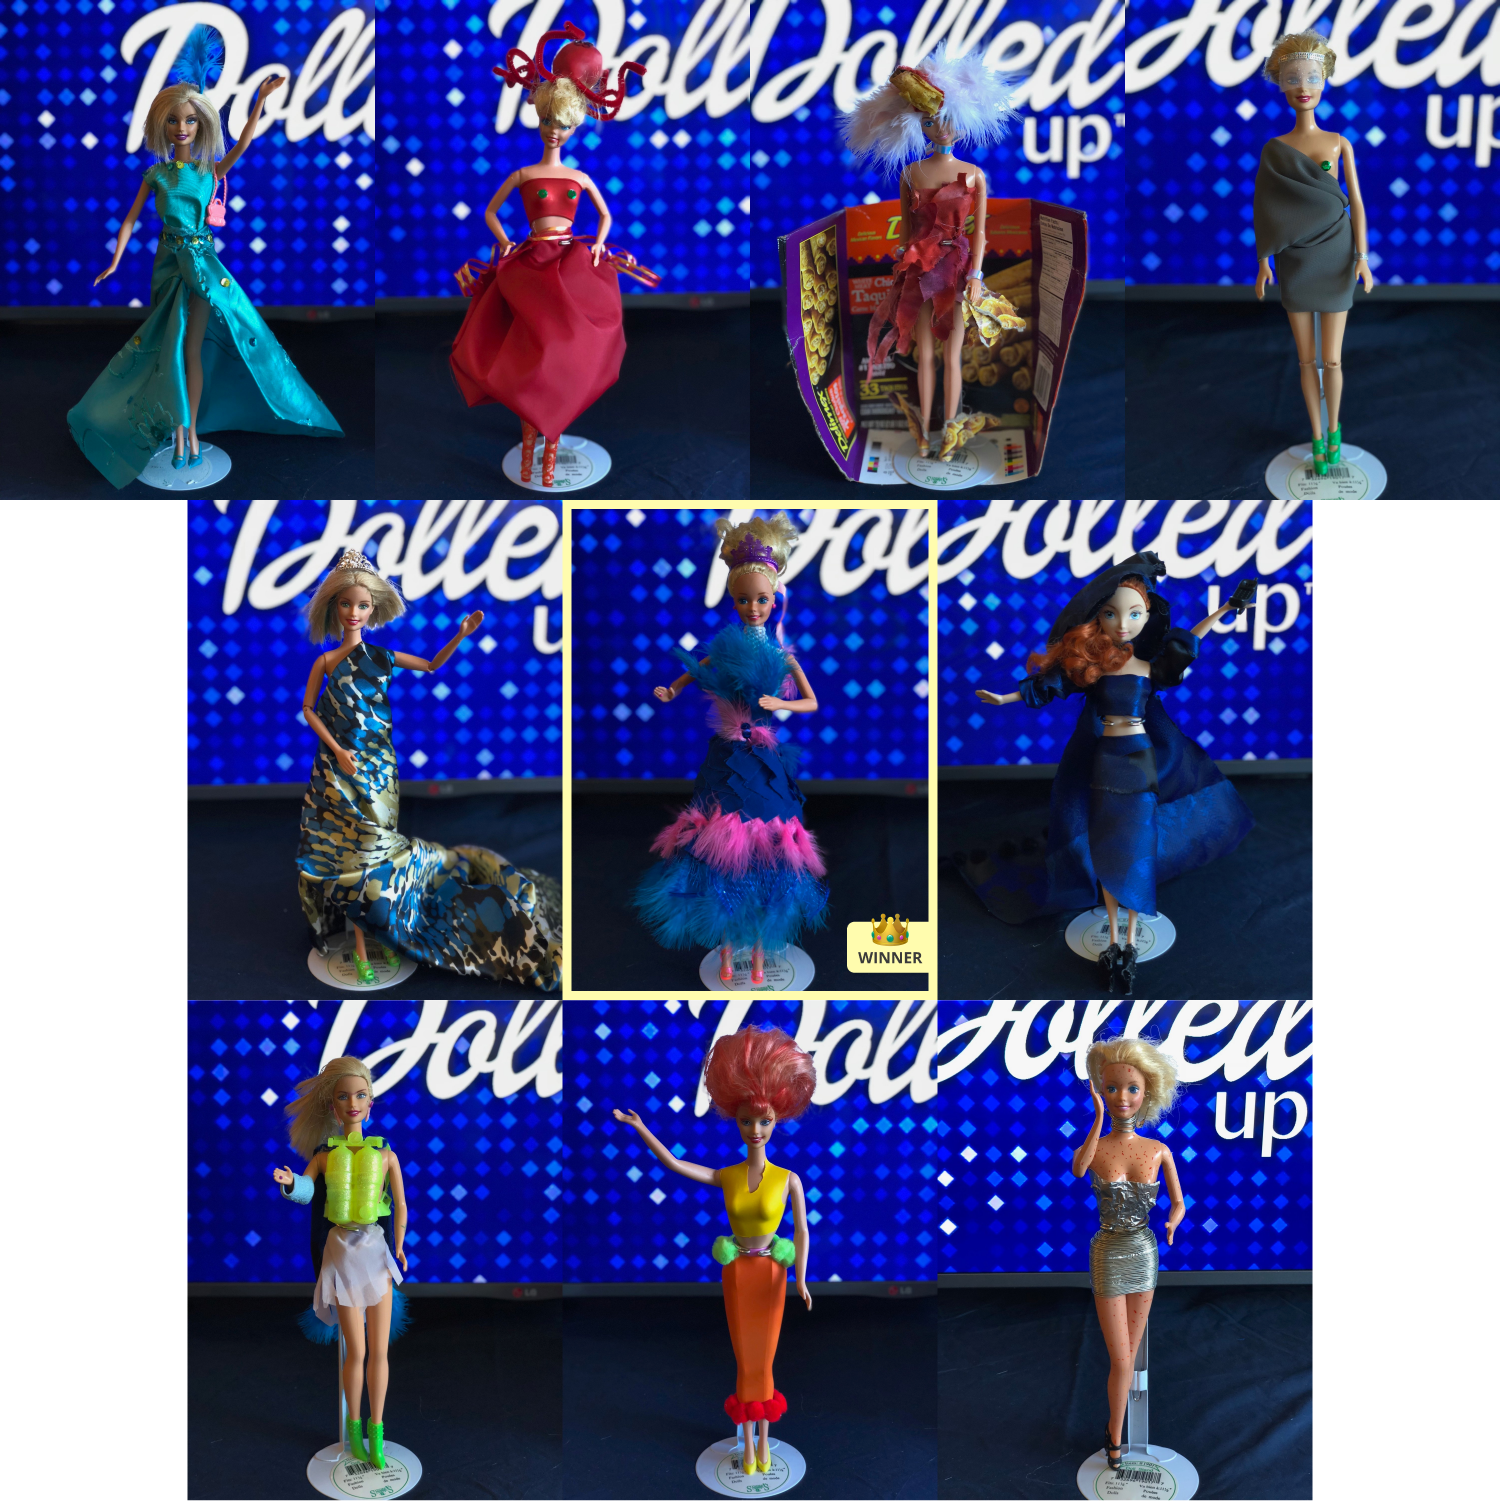 A grid showing the 10 Barbie finalists in their crafted looks, with the winner in the middle